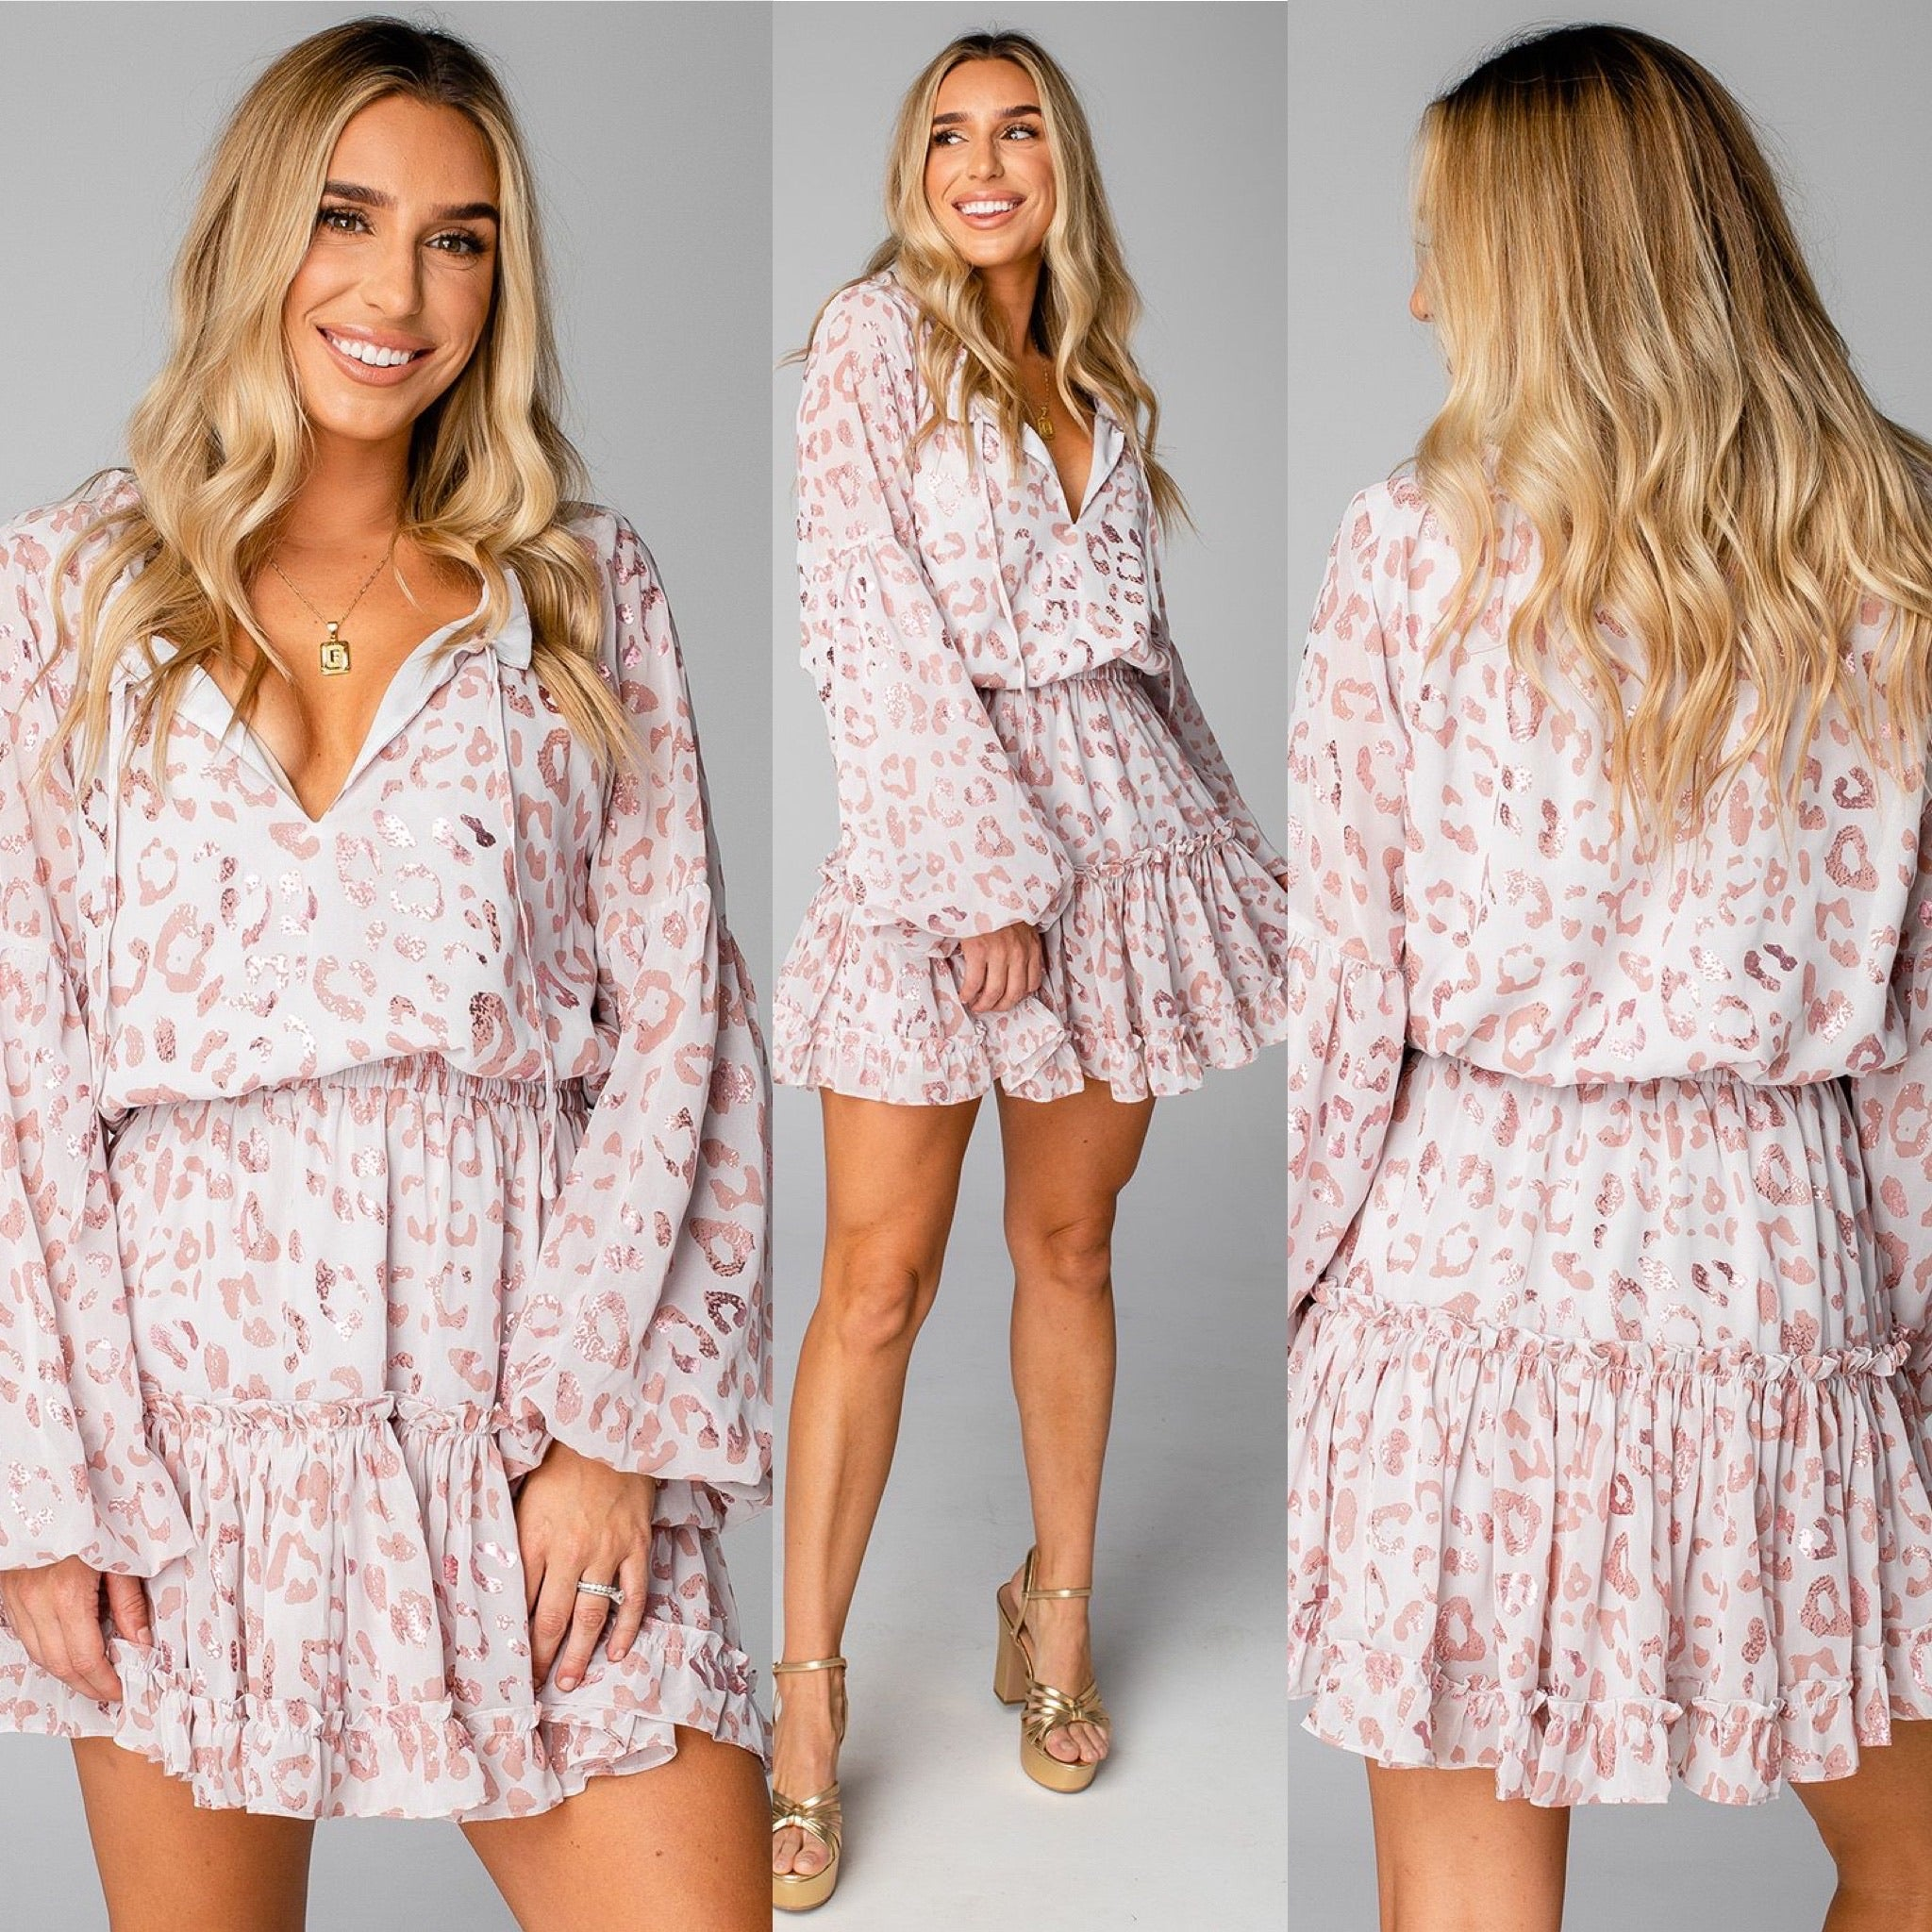 ZOZO ROSE DRESS